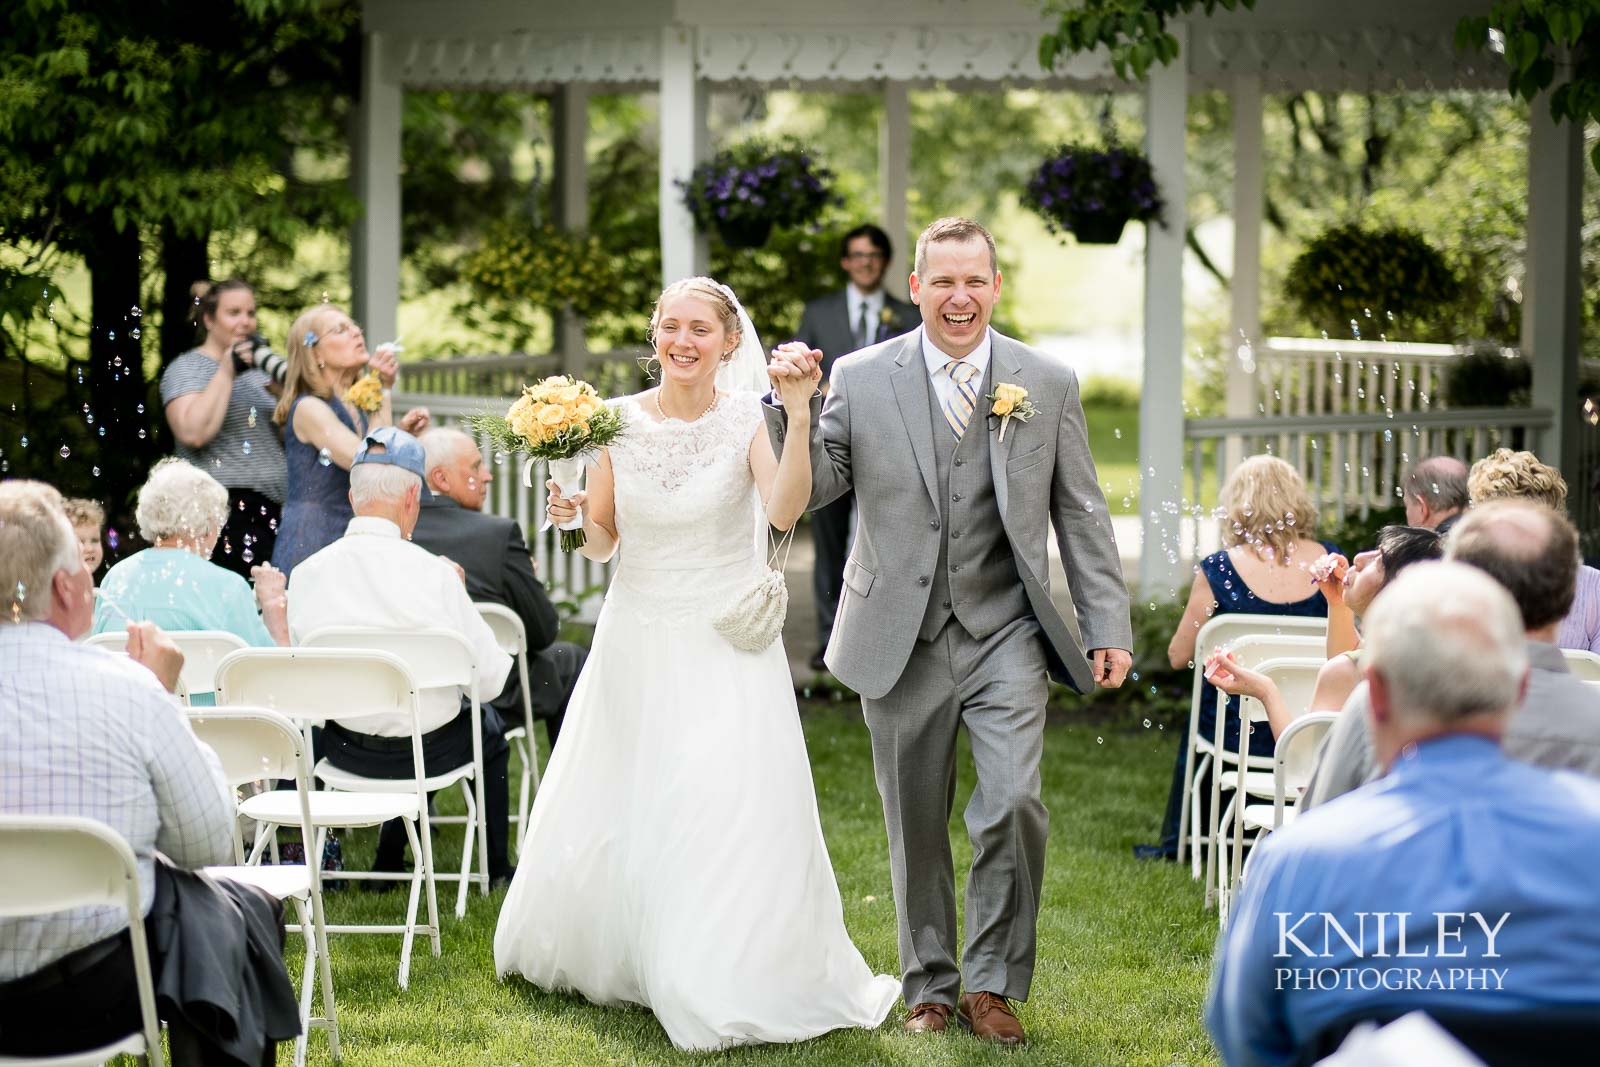 33-Plantation-Party-House-springtime-wedding-Rochester-NY-Kniley-Photography.jpg